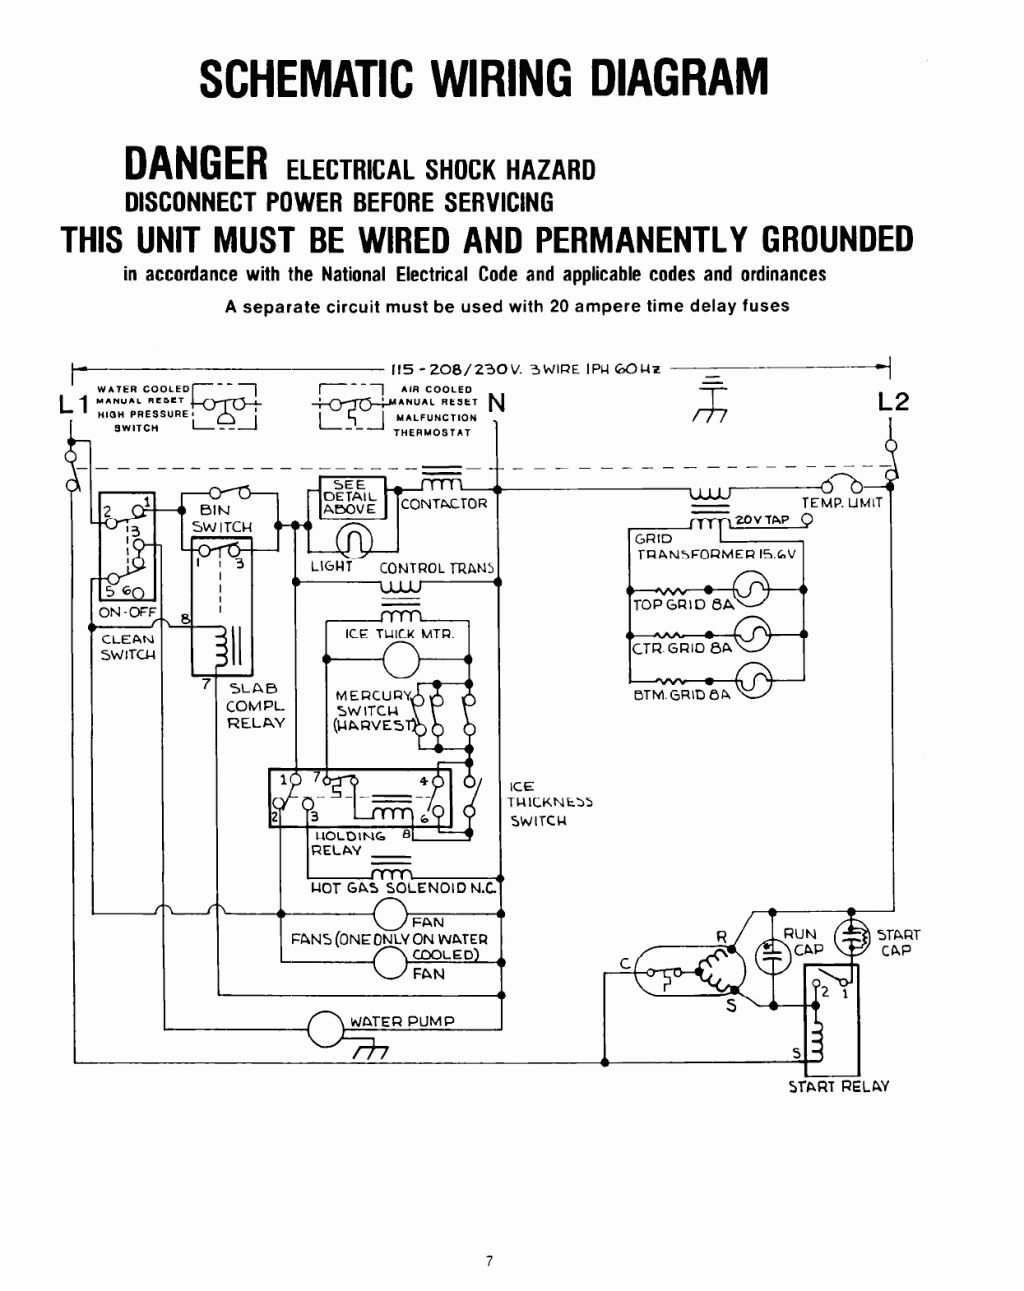 Wiring Diagram For Whirlpool Duet Dryer Heating Element : Wiring diagram for whirlpool dryer heating element gallery